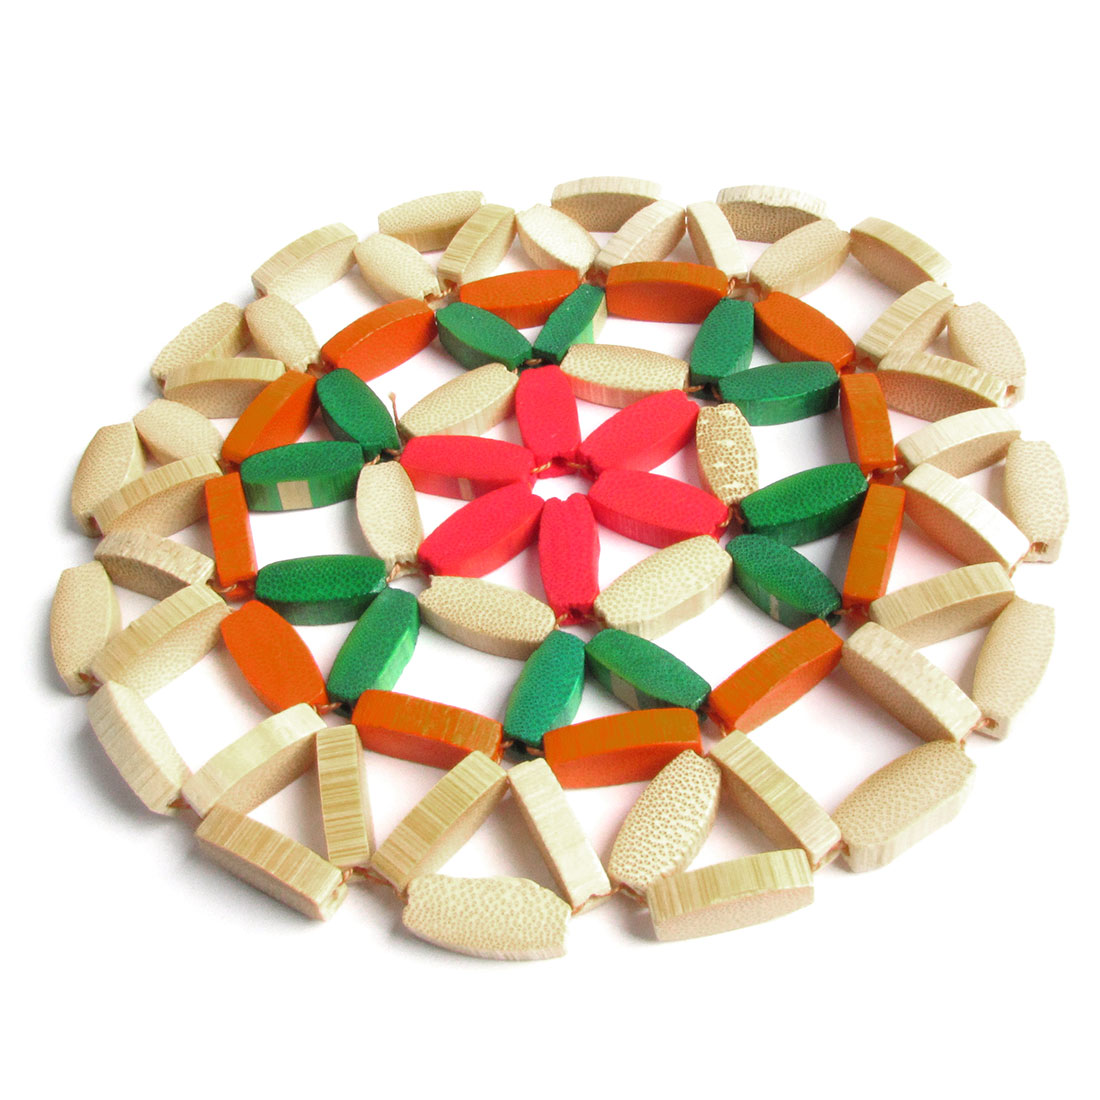 Round Bamboo Pot Holder Dish Pad Cup Mat Coaster Colorful